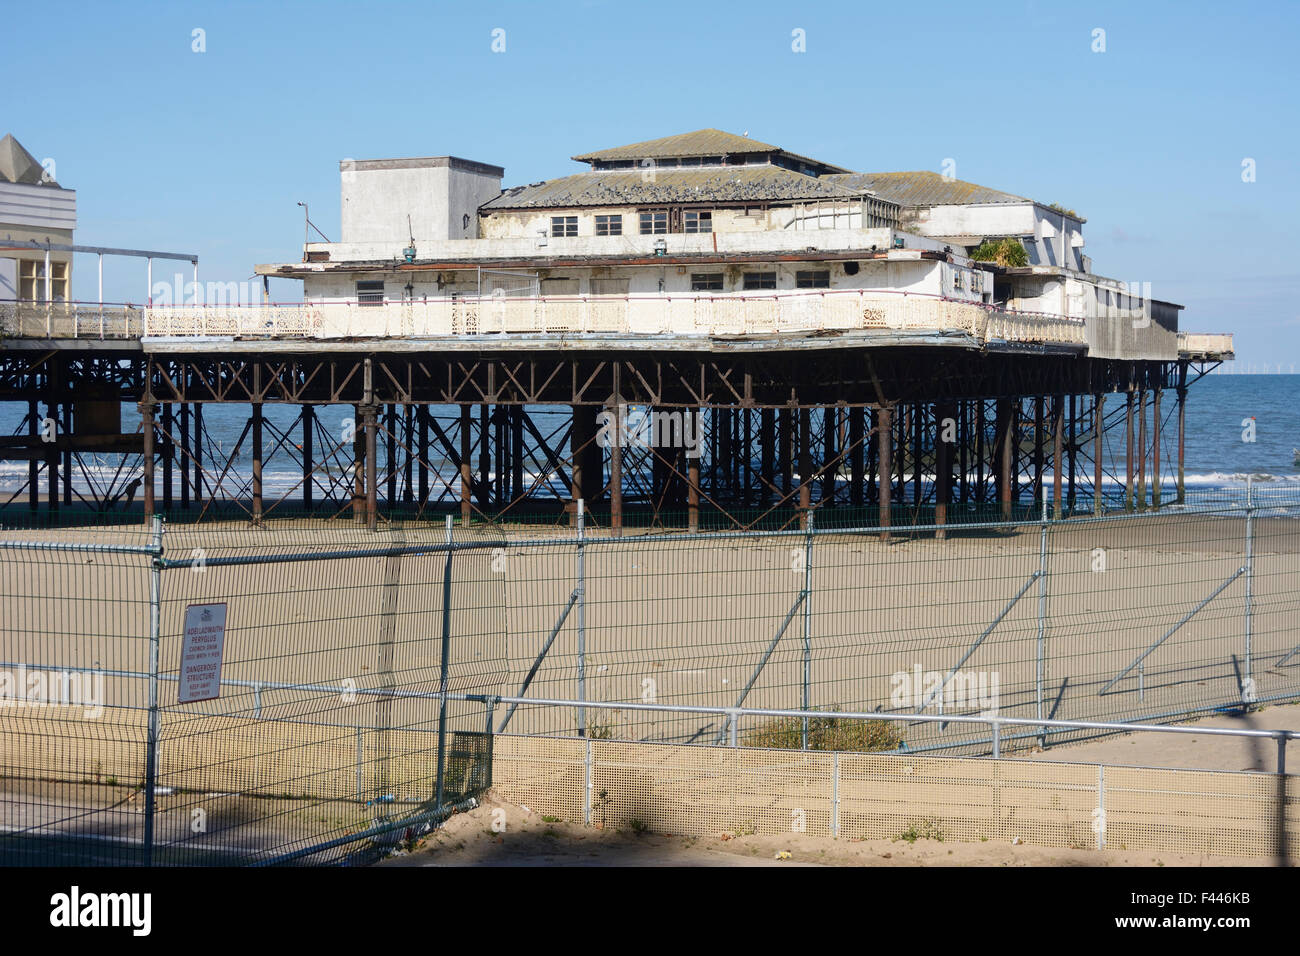 Colwyn Bay pier in a state of decay and disrepair. - Stock Image